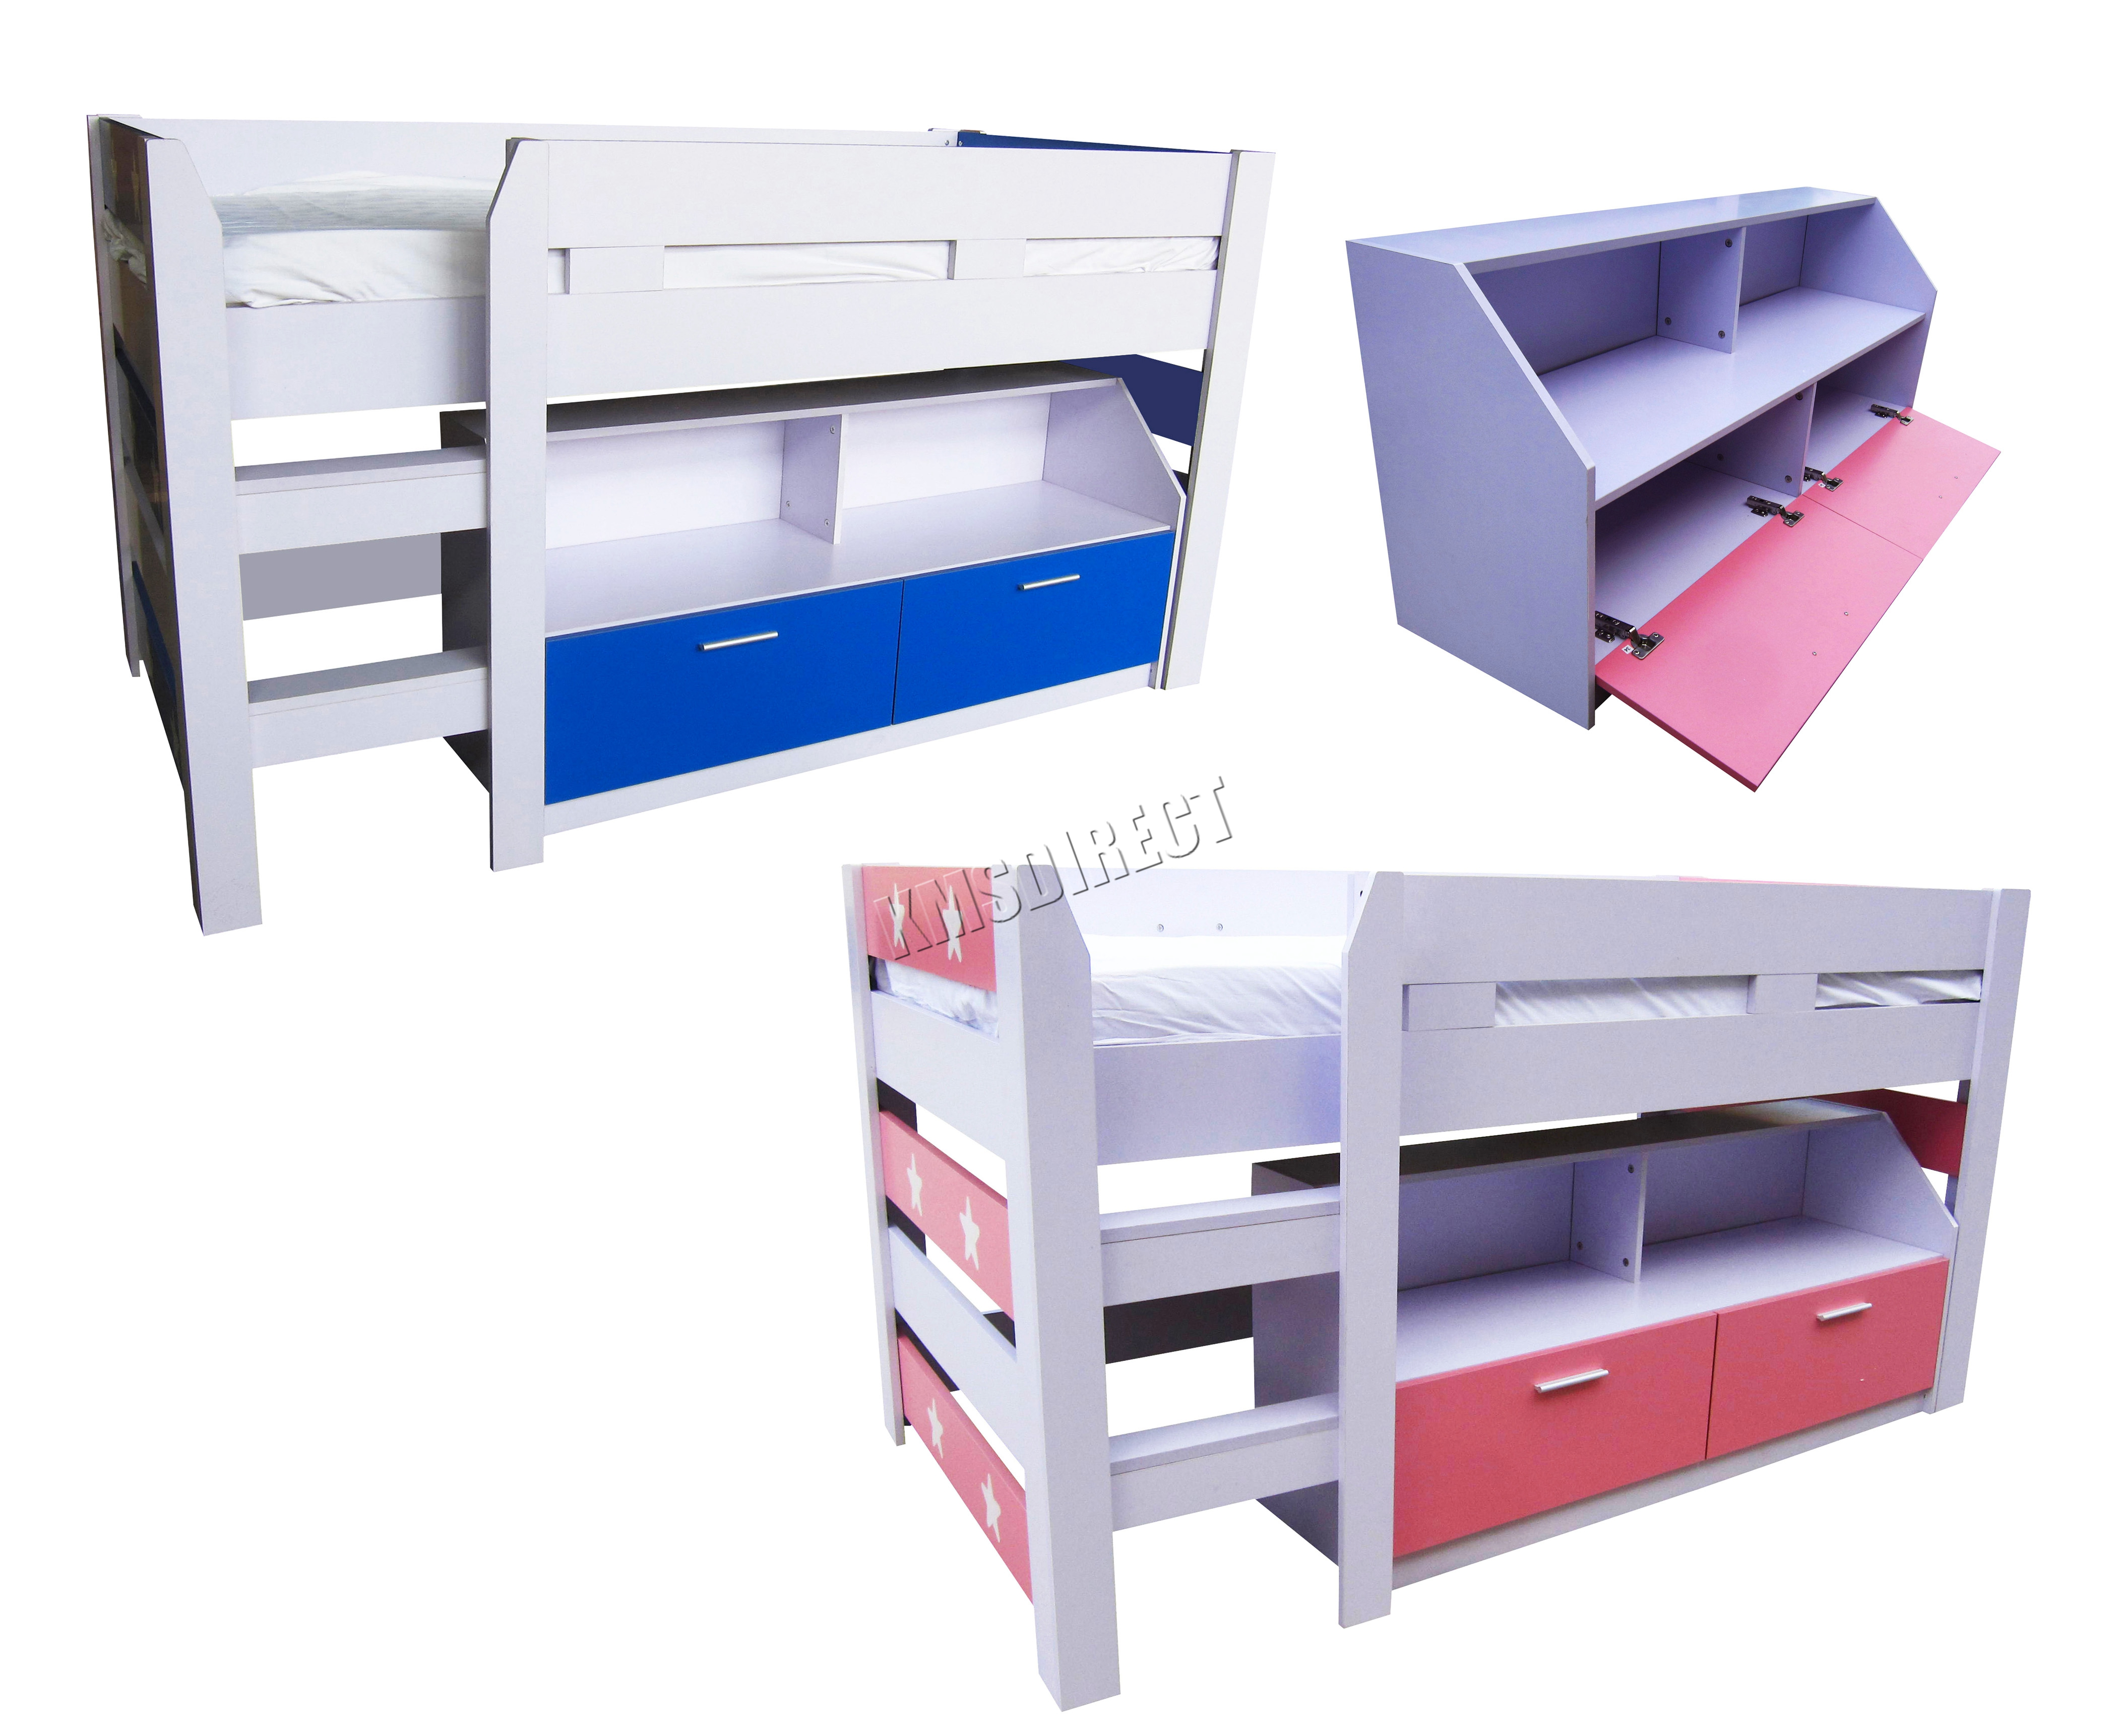 Foxhunter Mdf Kids 3ft Mid Sleeper Cabin Bunk Bed Wooden With Book